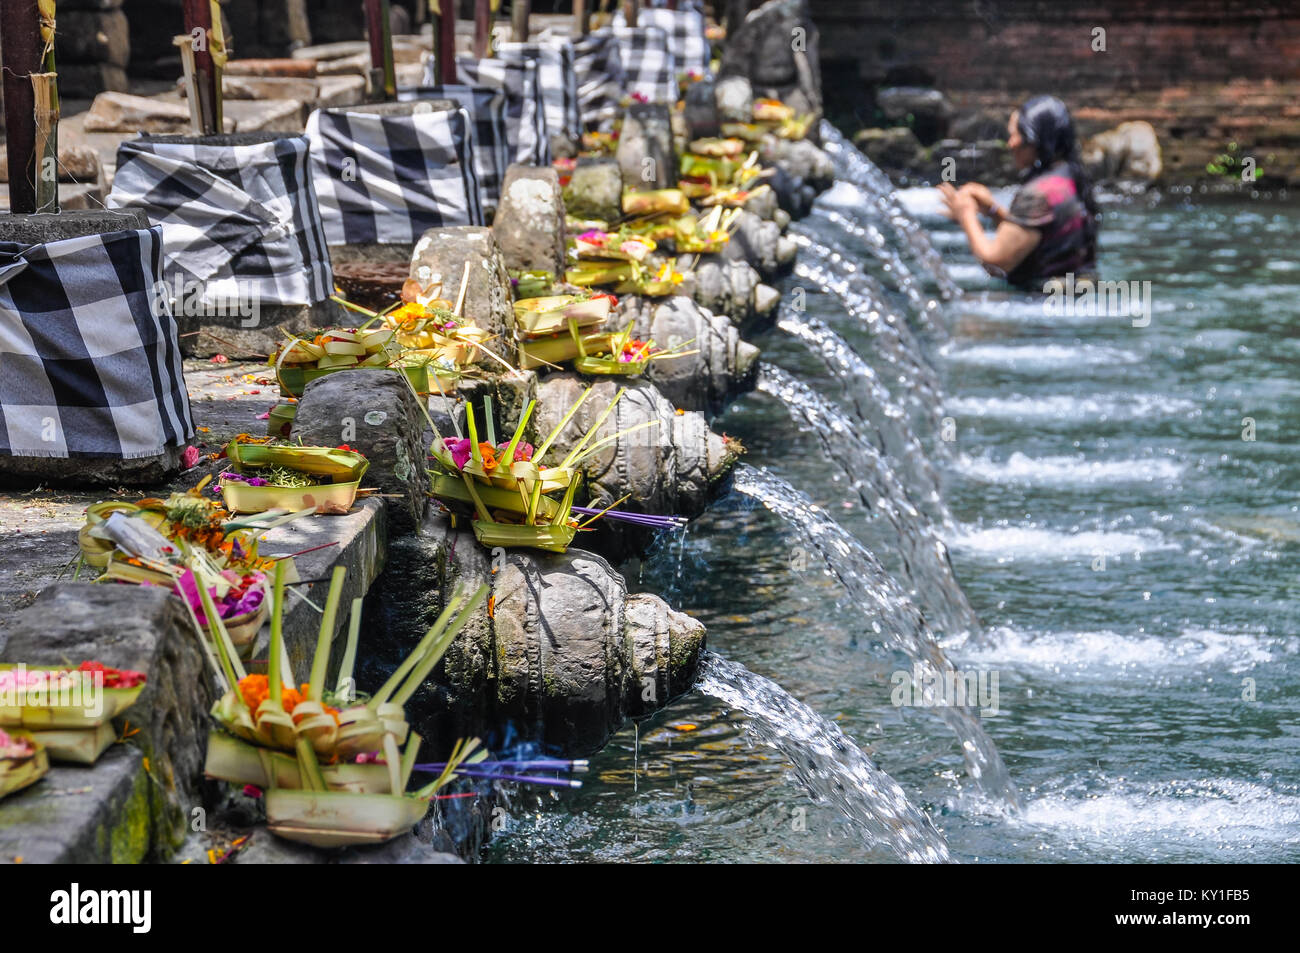 Bagno Purificatore Balinese Woman Taking Purifying Bath In The Tirta Empul Temple In